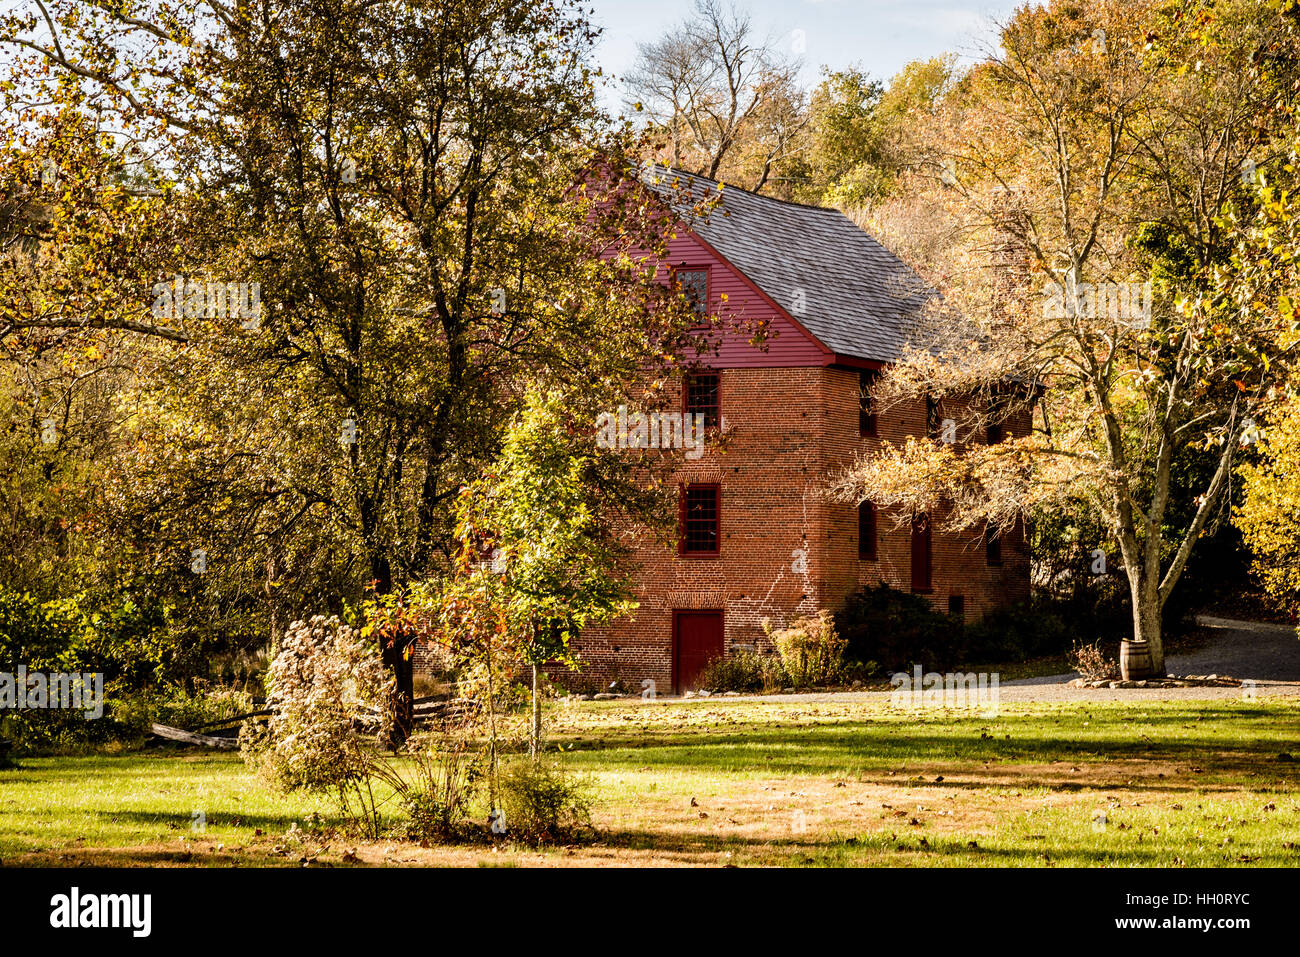 Colvin Run Mill, 10017 Colvin Run Road, Great Falls, Virginia - Stock Image